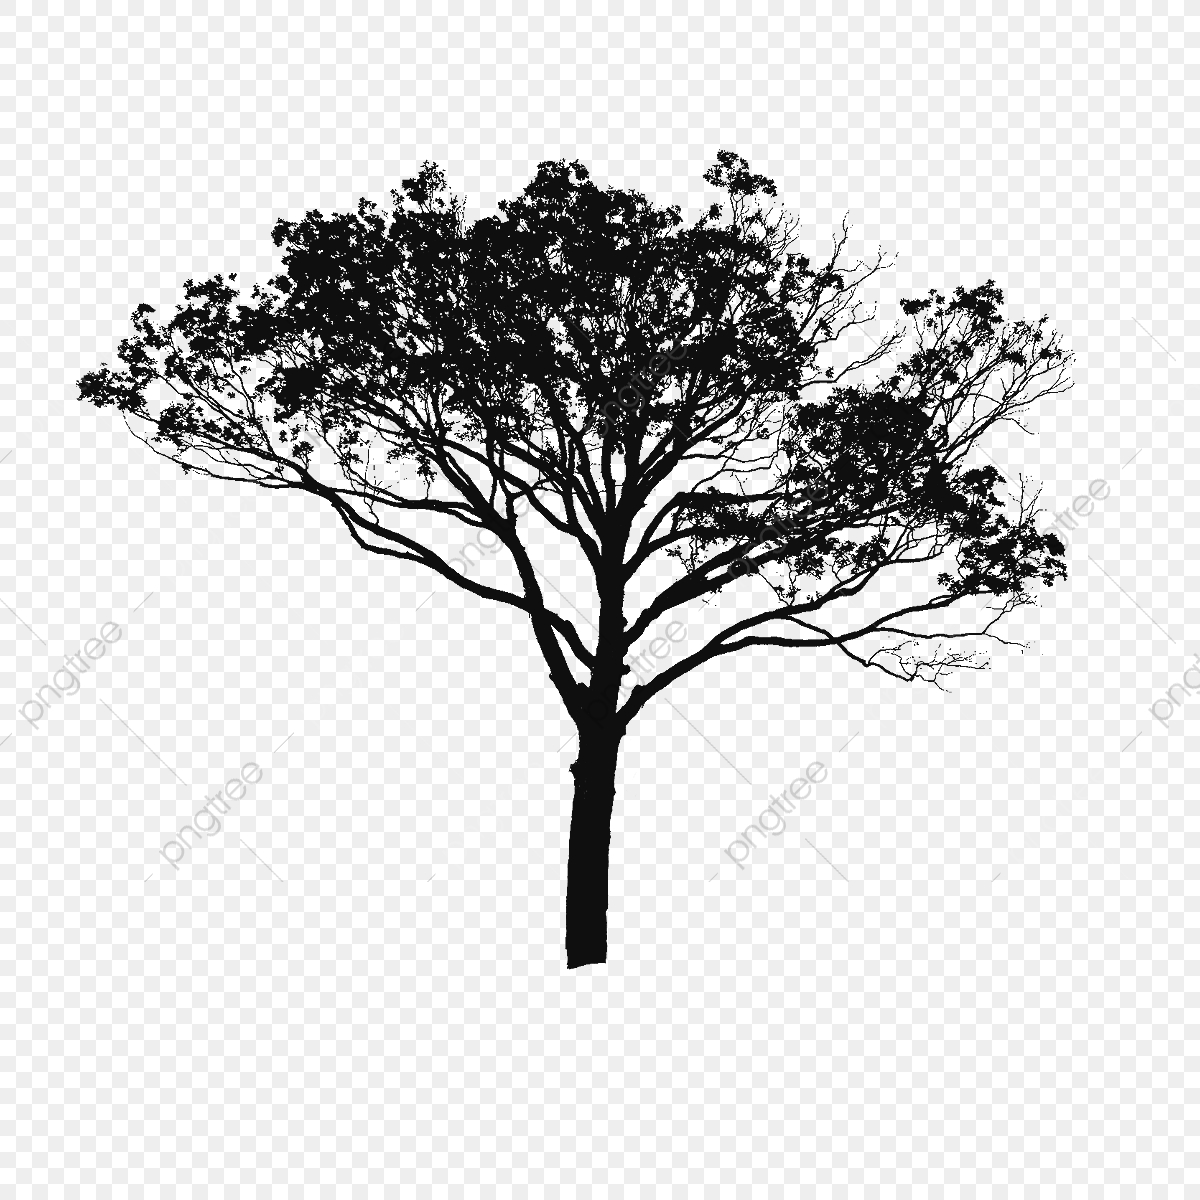 Tree Vector Black And White, Tree Vector Clipart, Tree ... image black and white